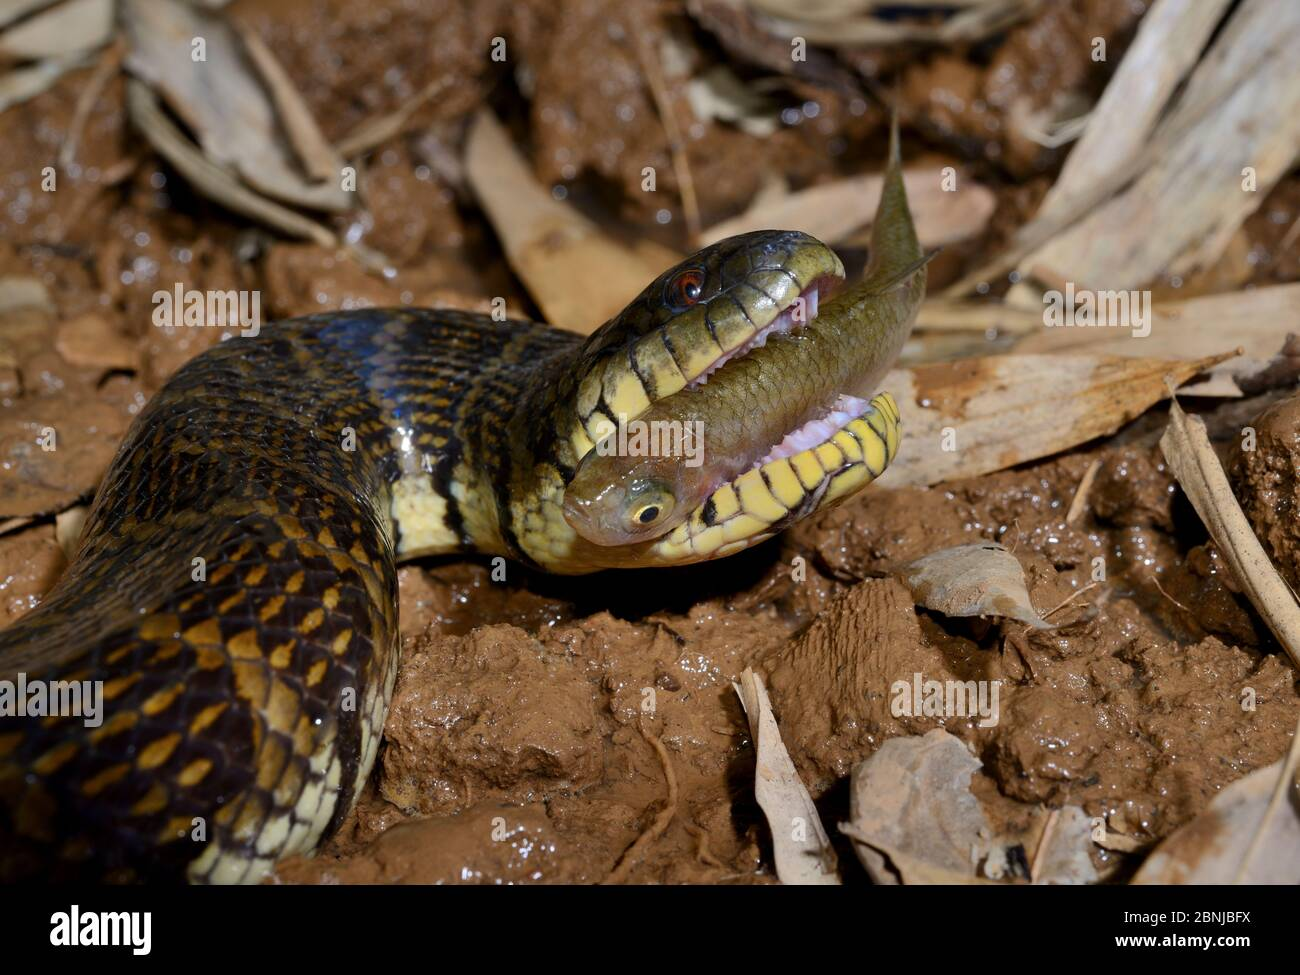 Bocourt's mud snake (Subsessor bocourti) feeding on fish, captive, occurs in South East Asia. Stock Photo